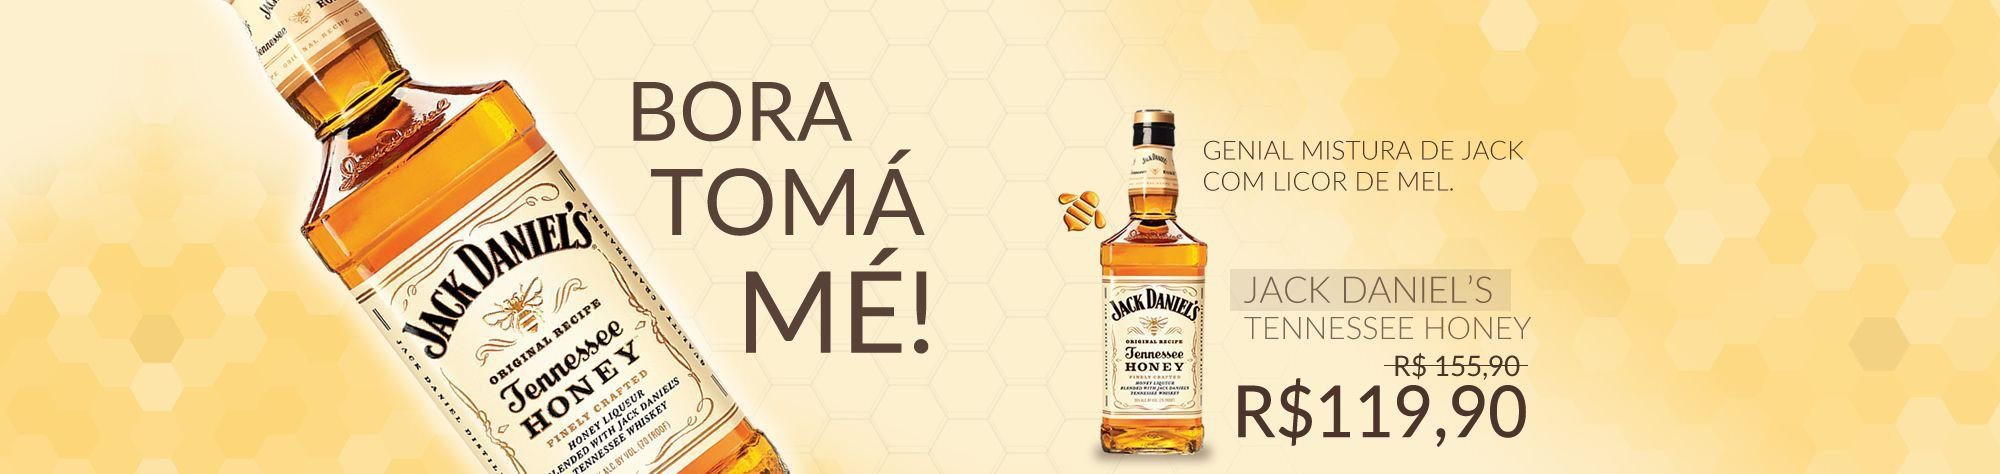 Compre Whisky Jack Daniels Honey na Boxd